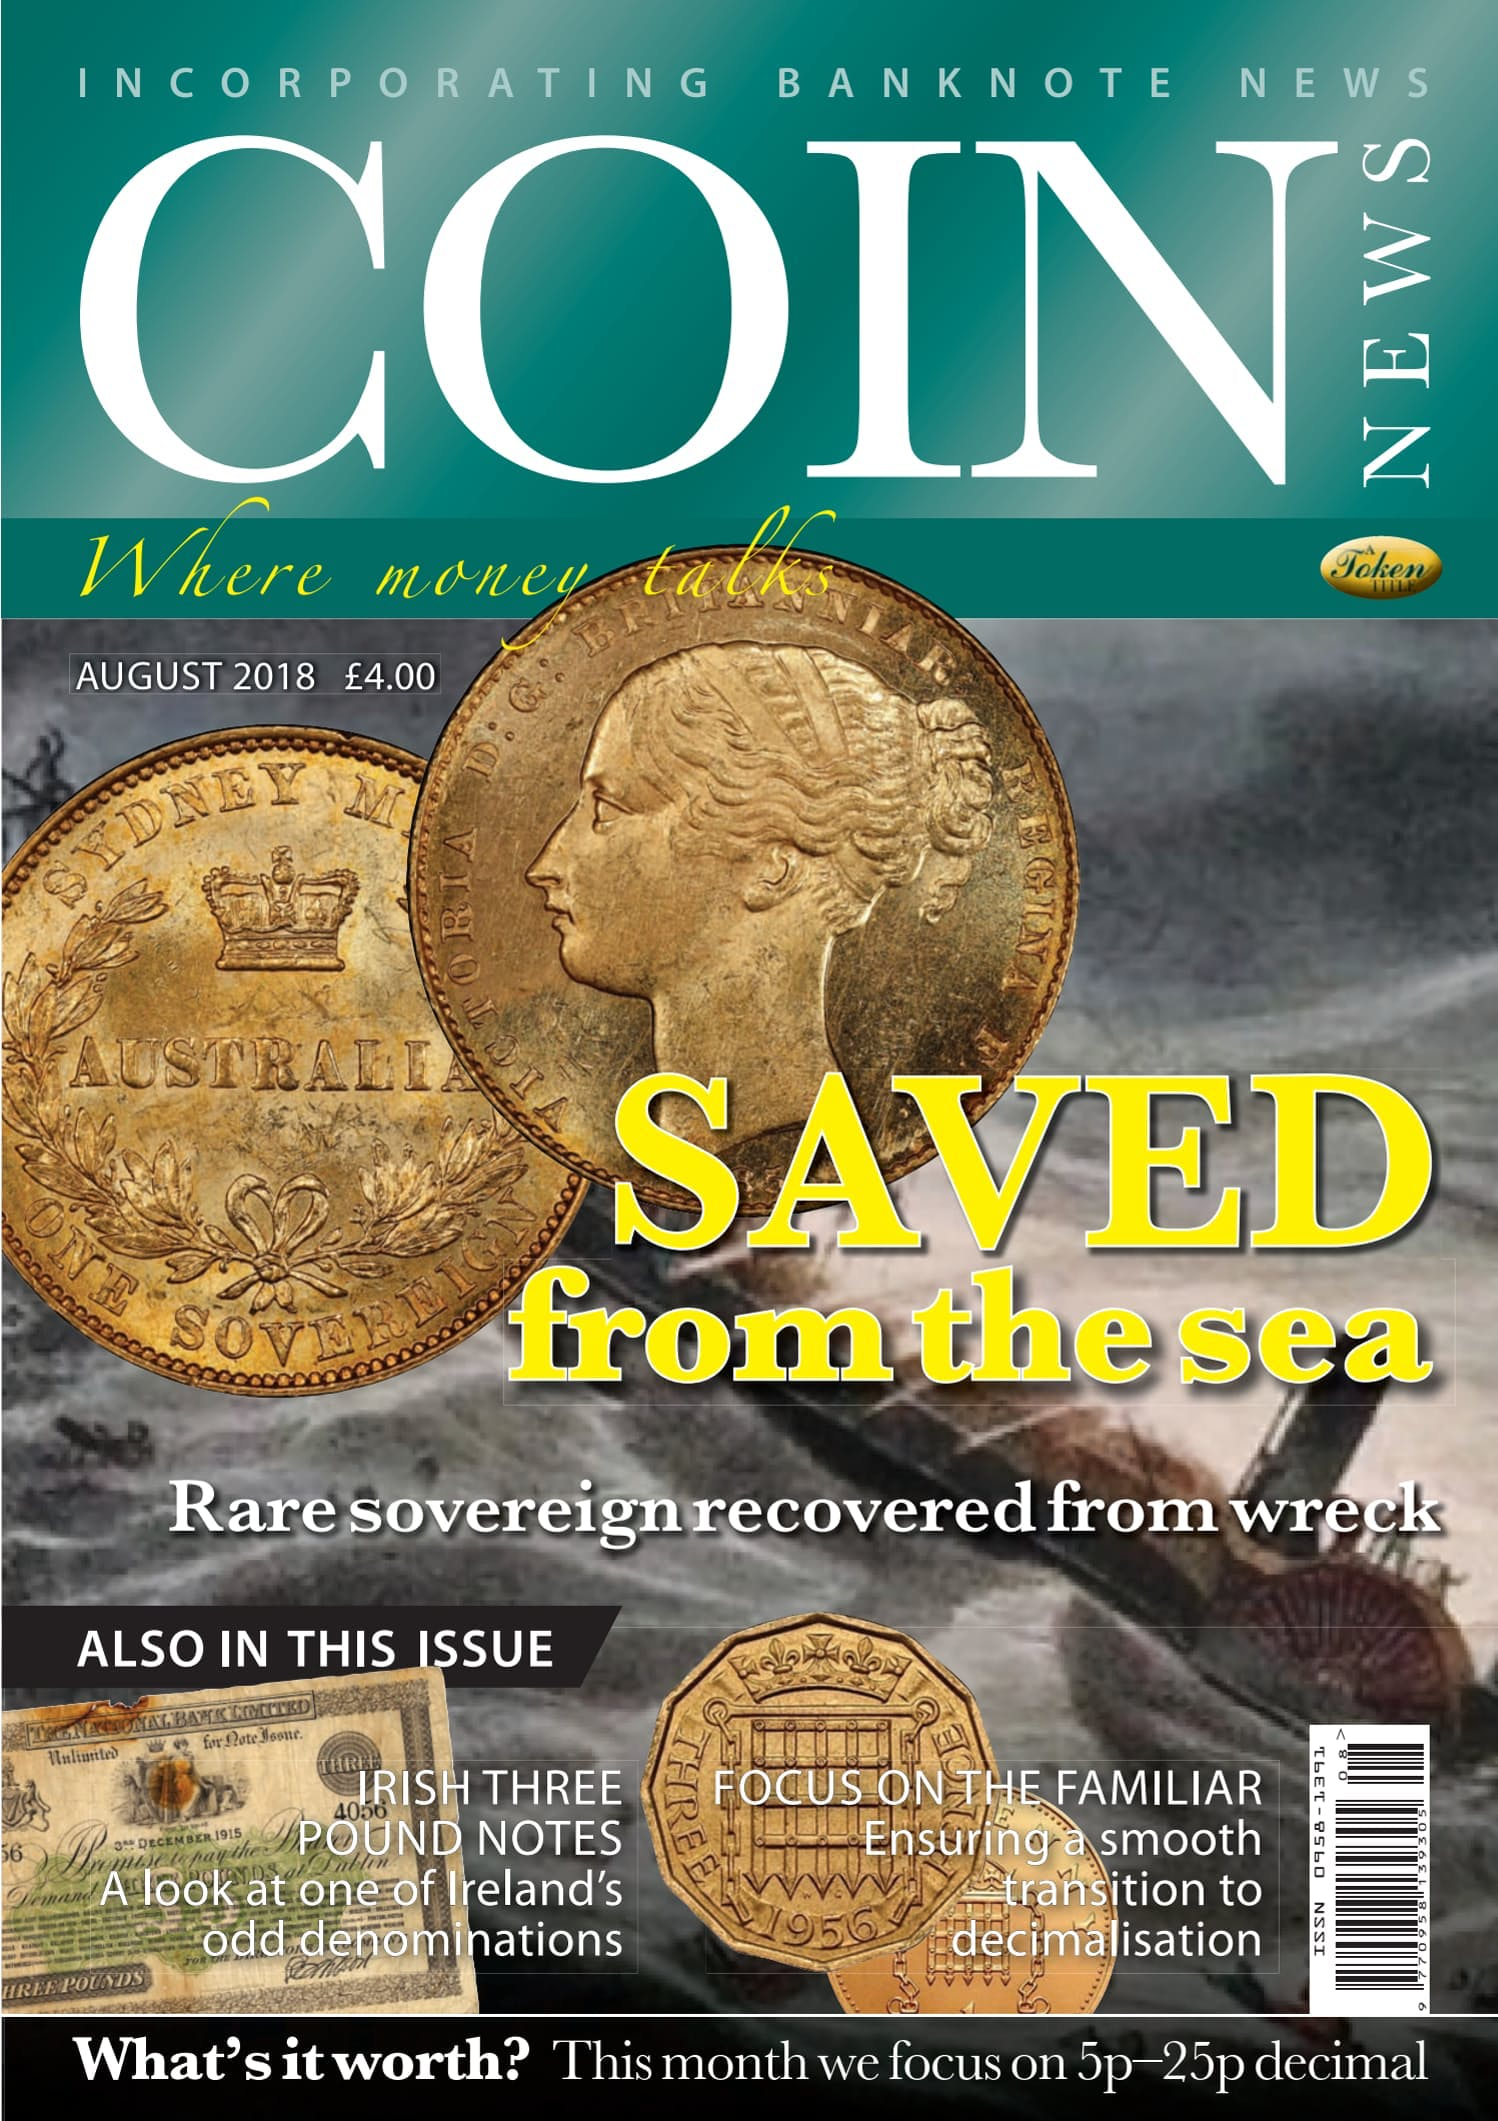 Front cover of 'Saved from the sea', Coin News August 2018, Volume 55, Number 8 by Token Publishing